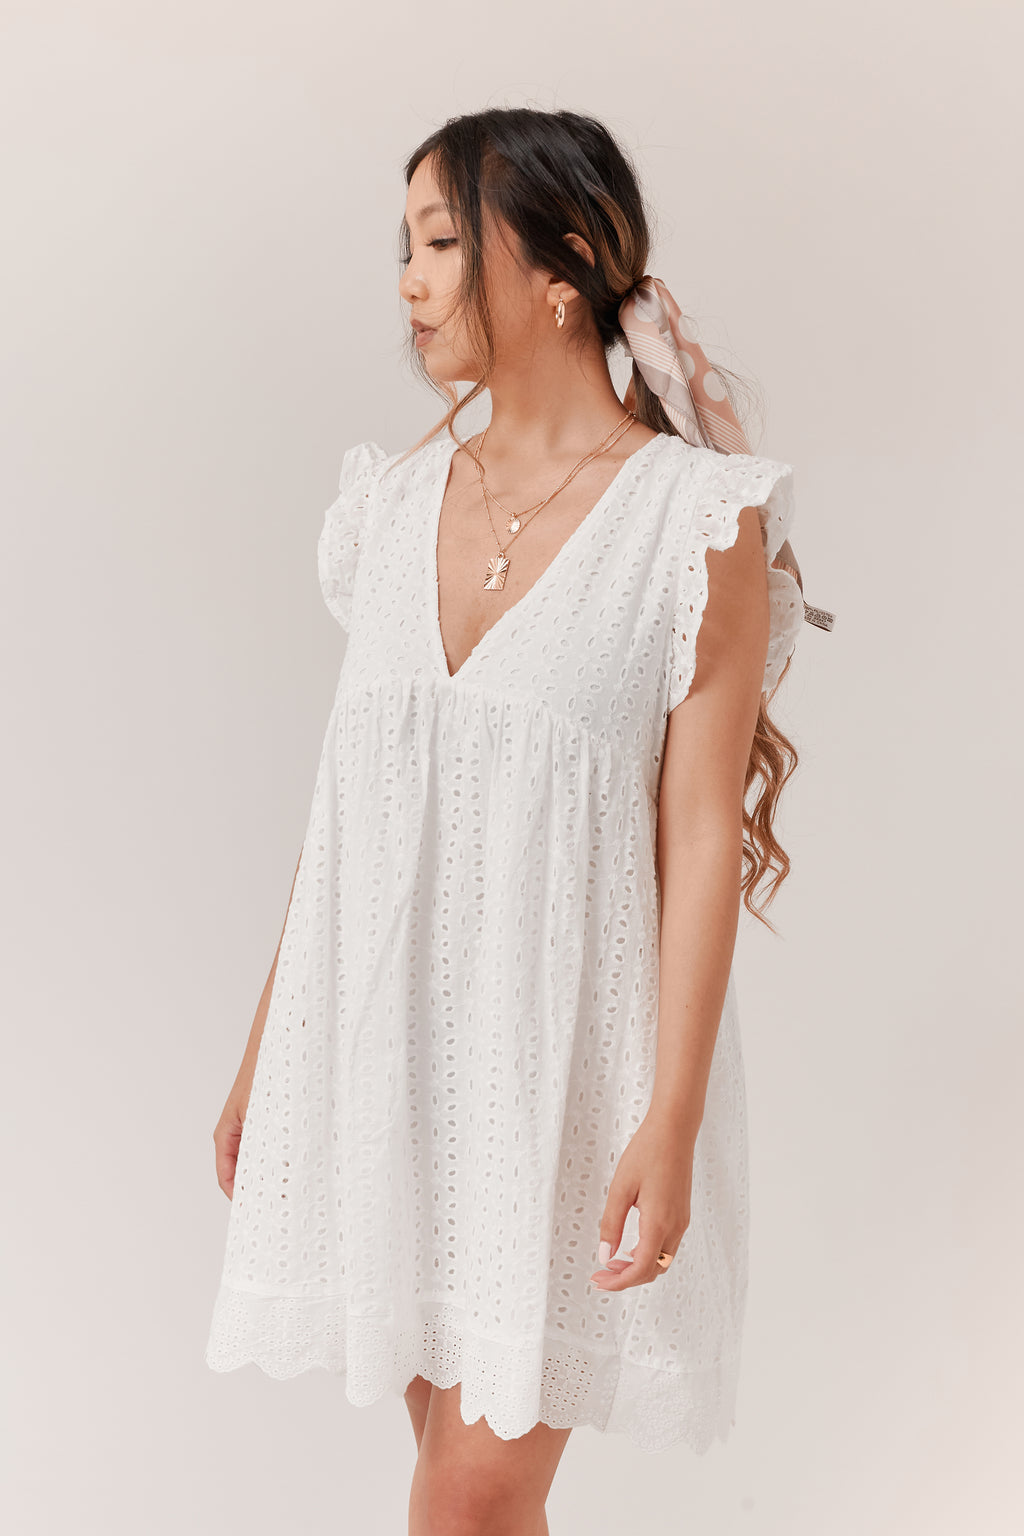 Tulip Romper Dress - White